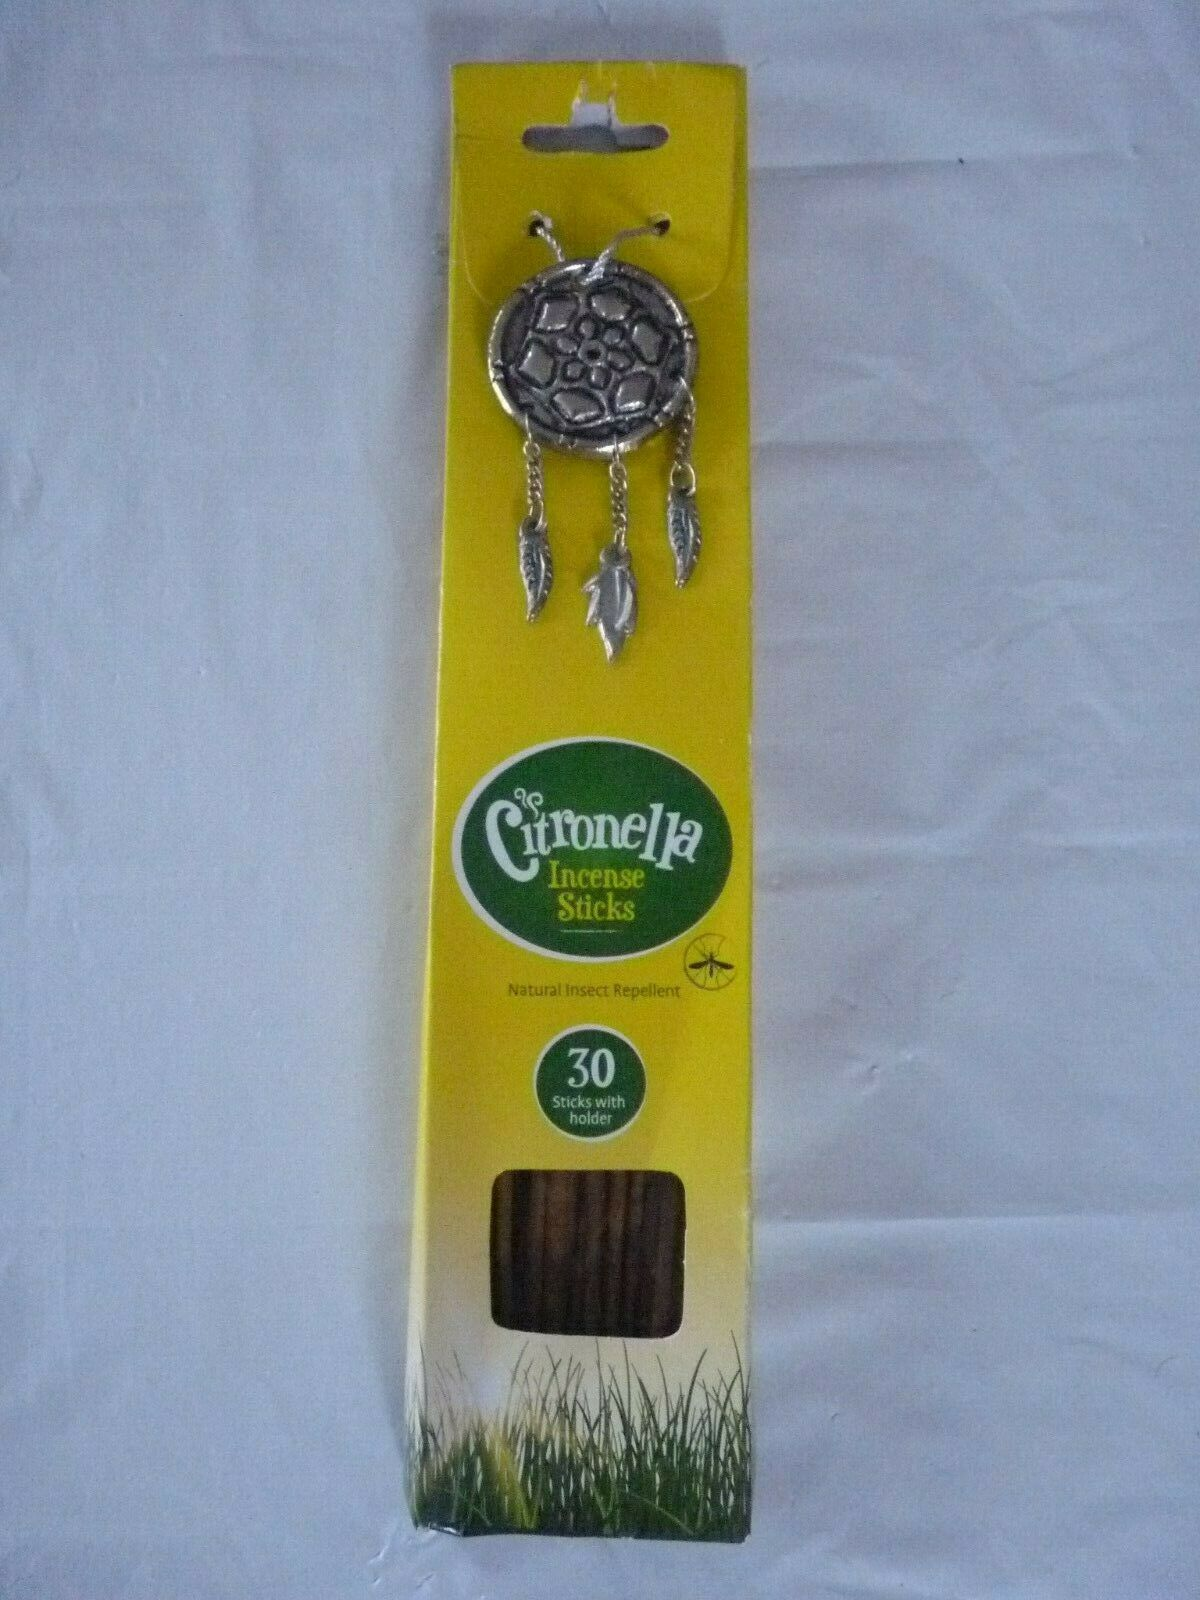 Incense Sticks with Holder Natural Insect Repellent Garden